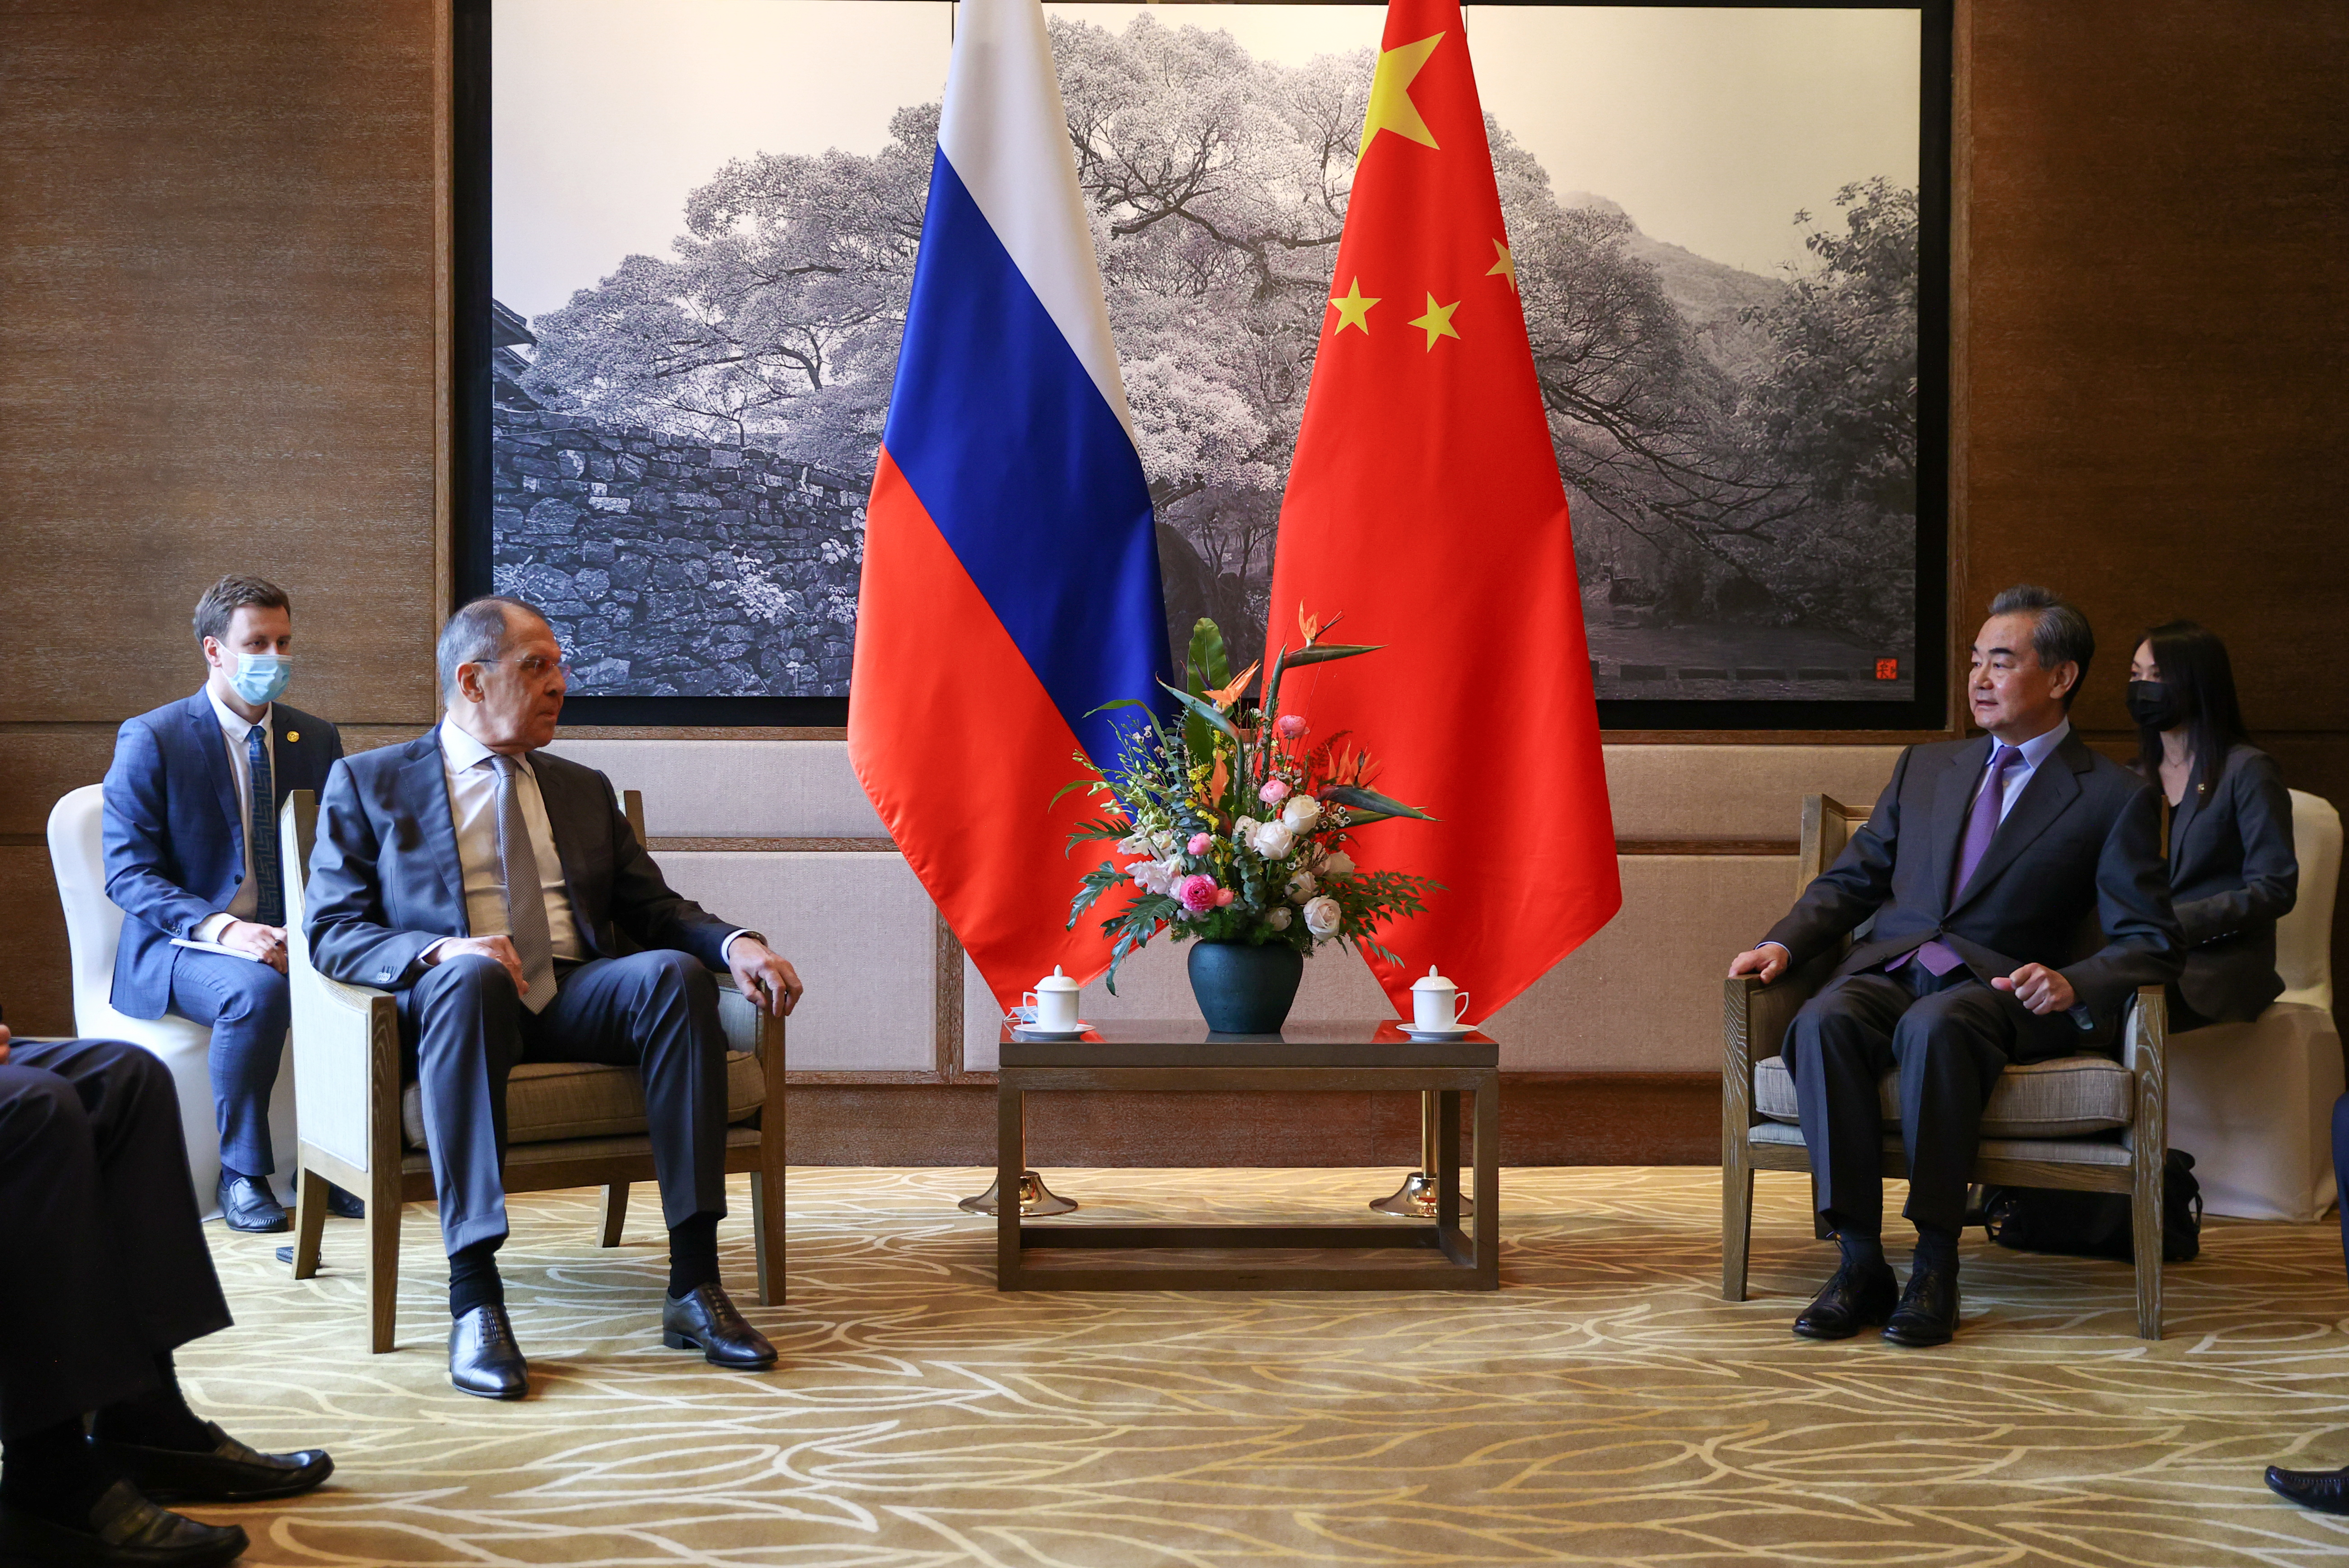 Russia's Foreign Minister Sergei Lavrov attends a meeting with China's State Councilor and Foreign Minister Wang Yi in Guilin, China March 22, 2021. Russian Foreign Ministry/Handout via REUTERS